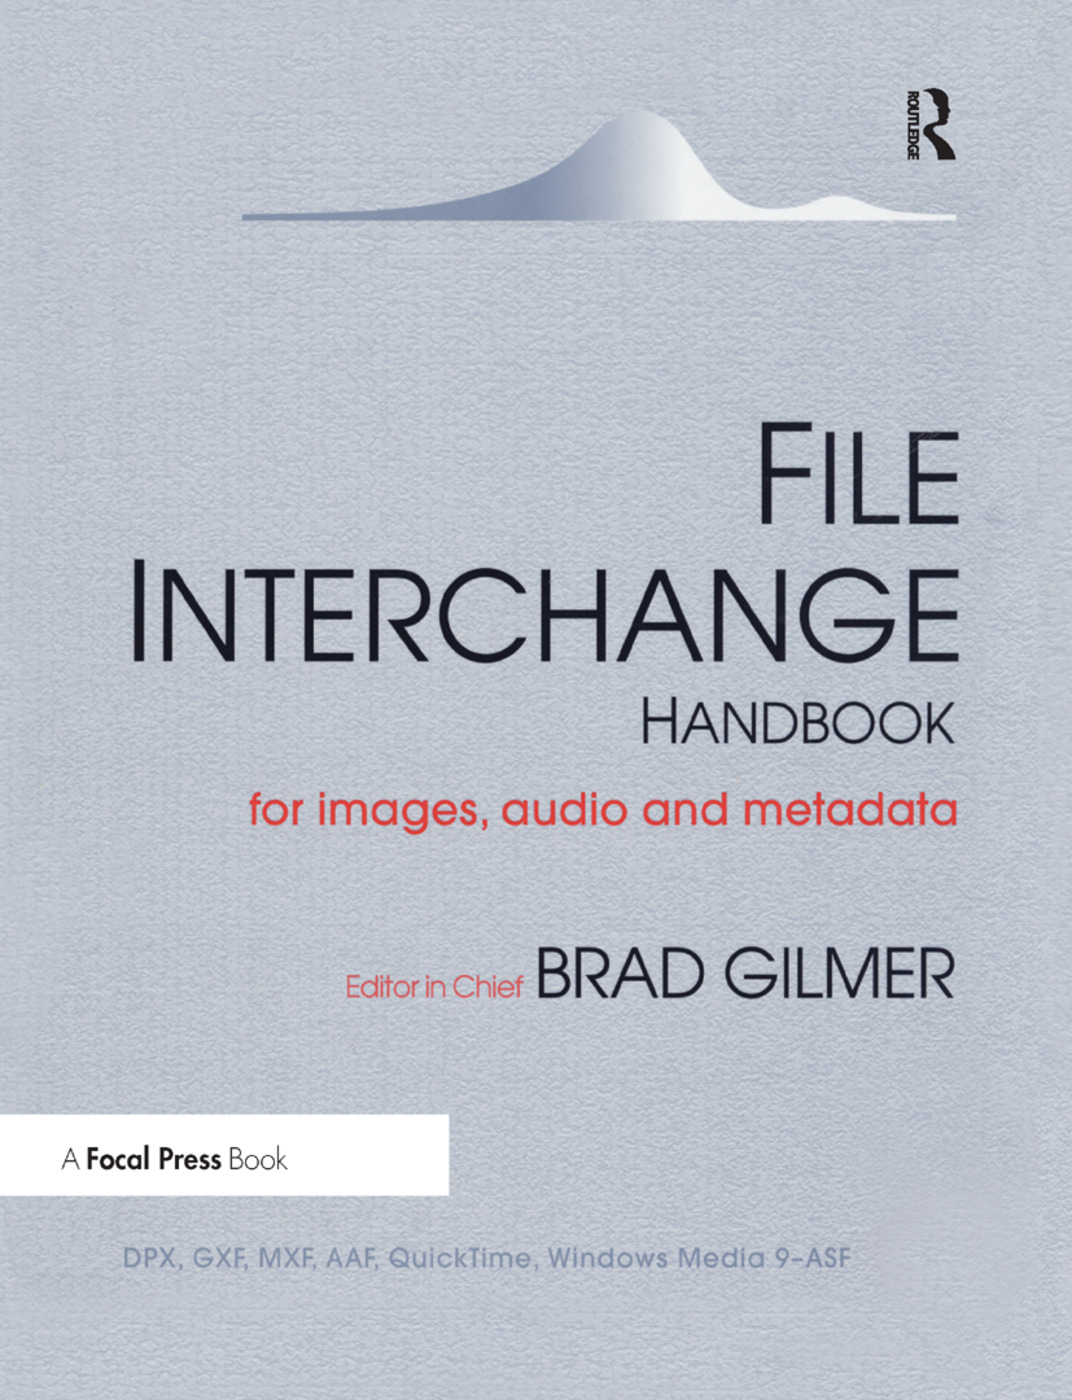 File Interchange Handbook: For professional images, audio and metadata, 1st Edition (Paperback) book cover